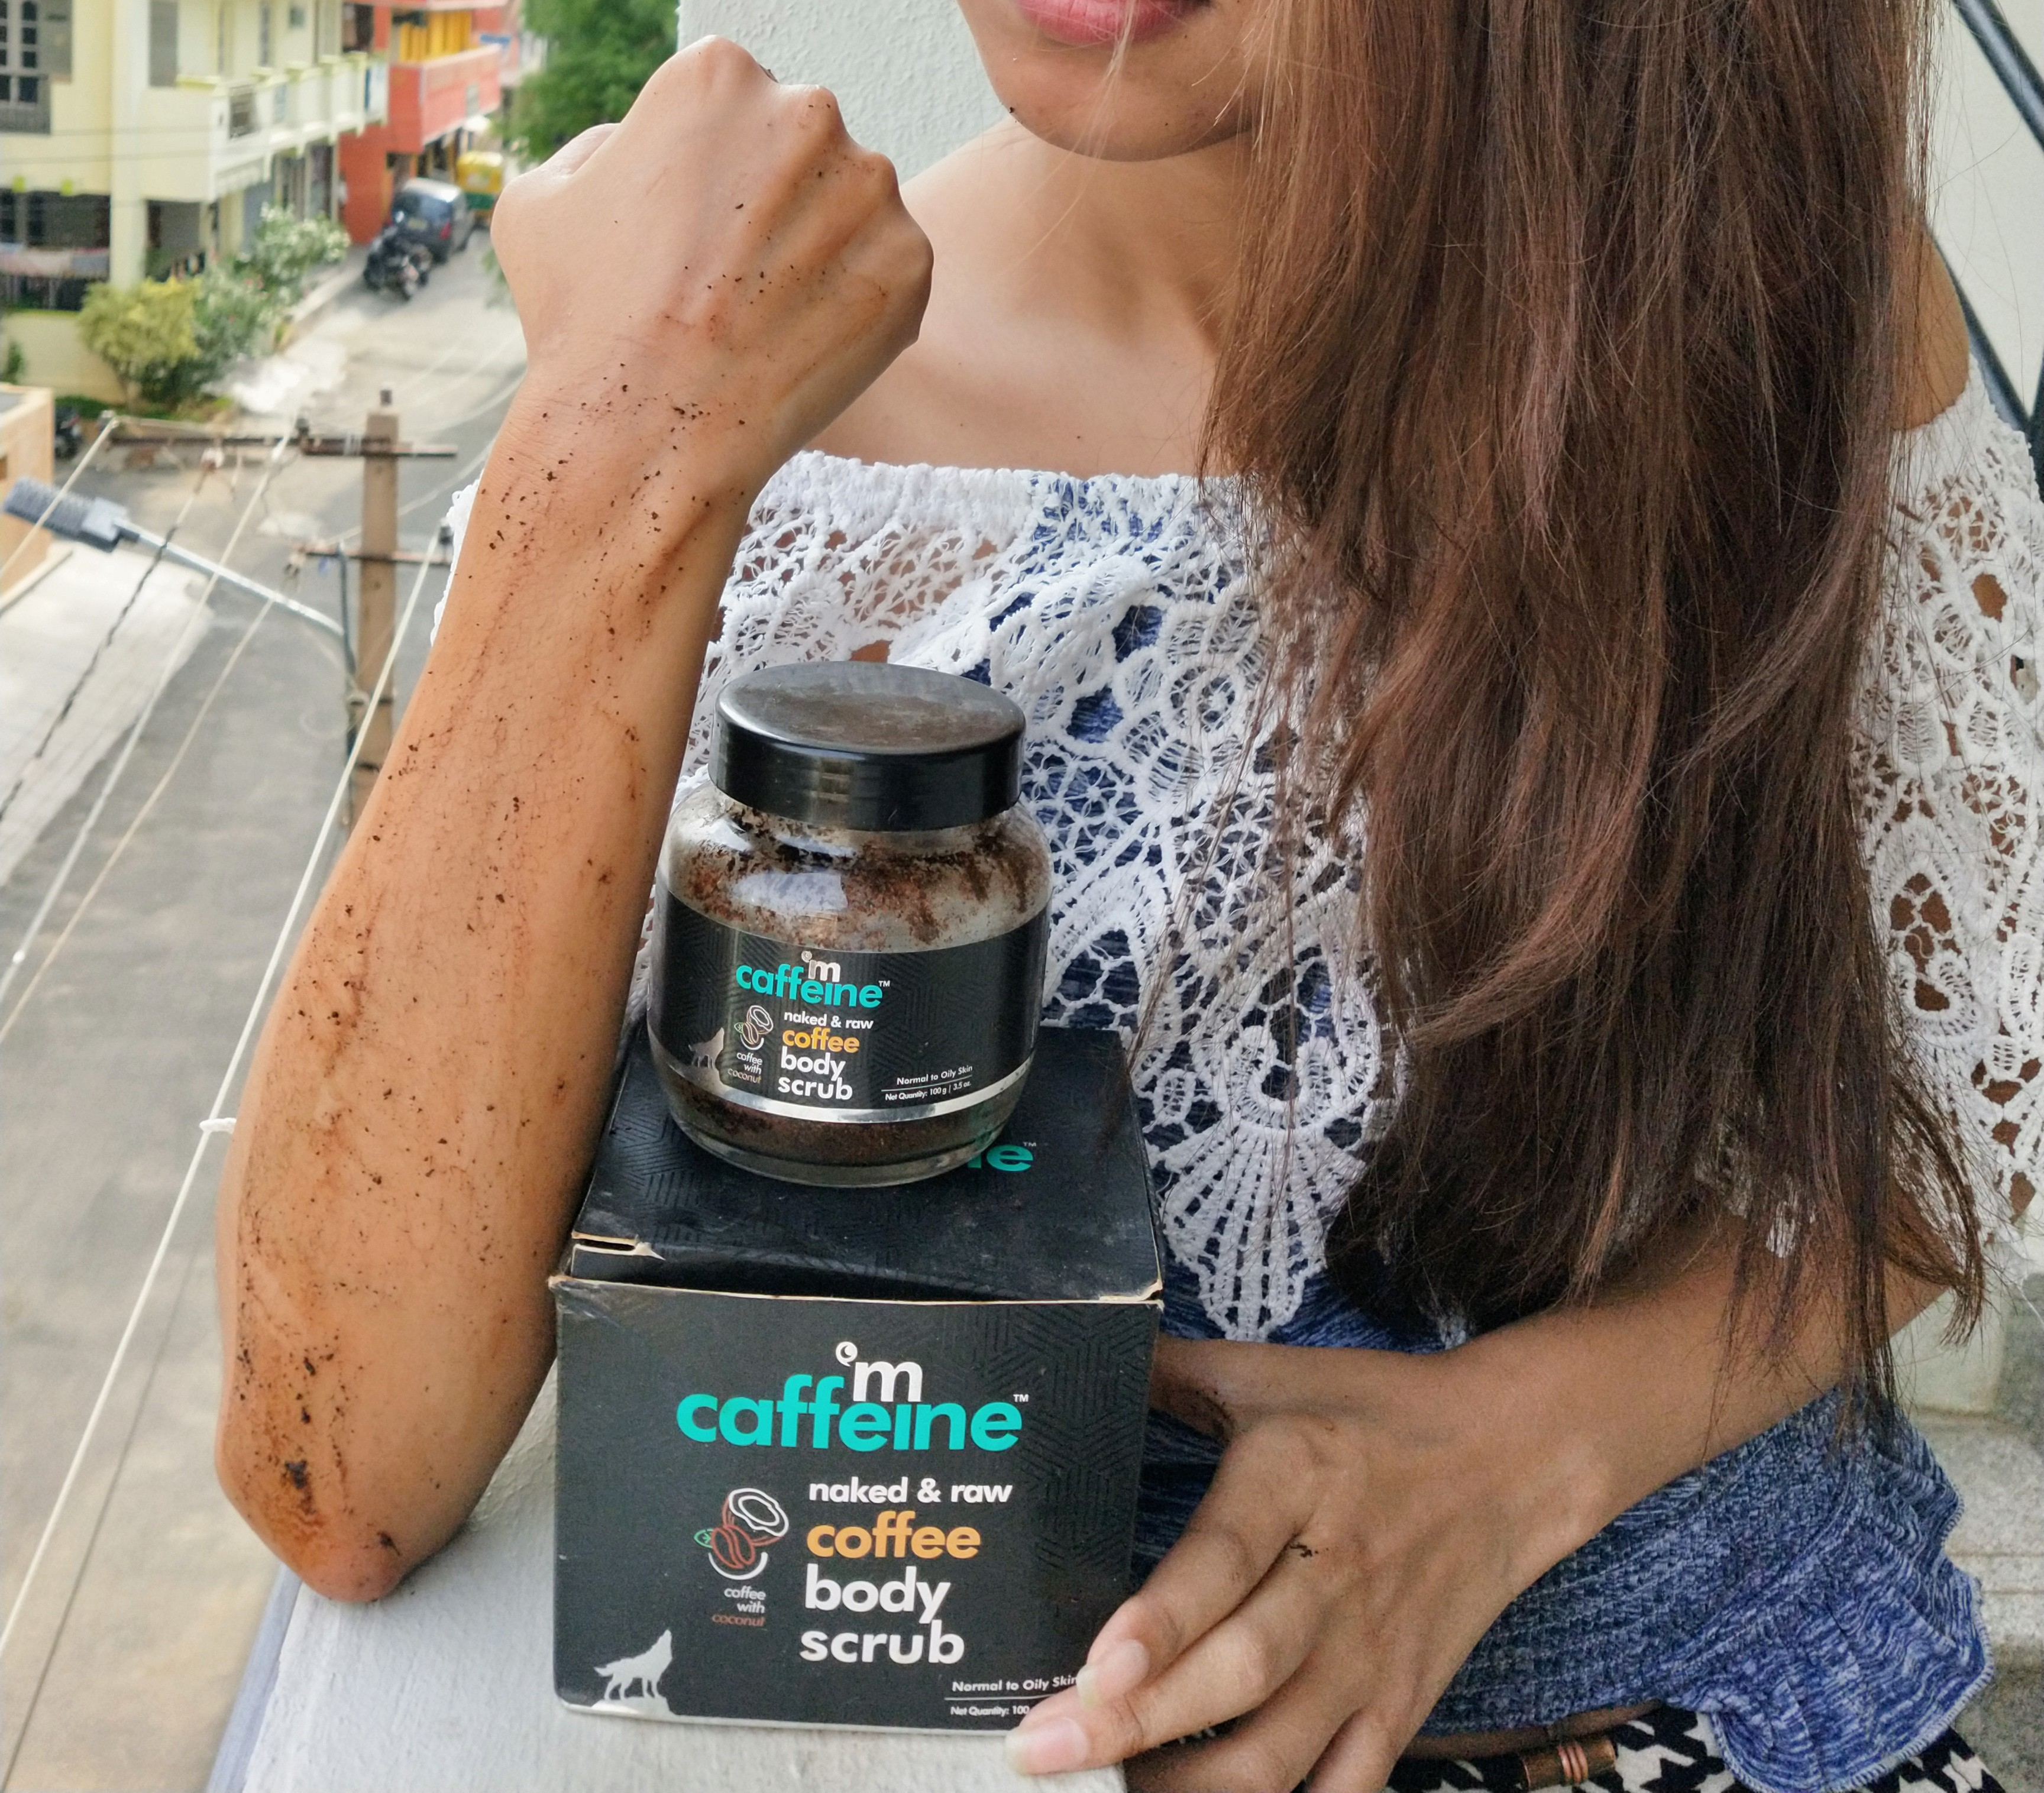 MCaffeine Naked & Raw Coffee Body Scrub-Amazing body exfoliator to get rid of tanning and dead skin-By miss_hungry_soul-1